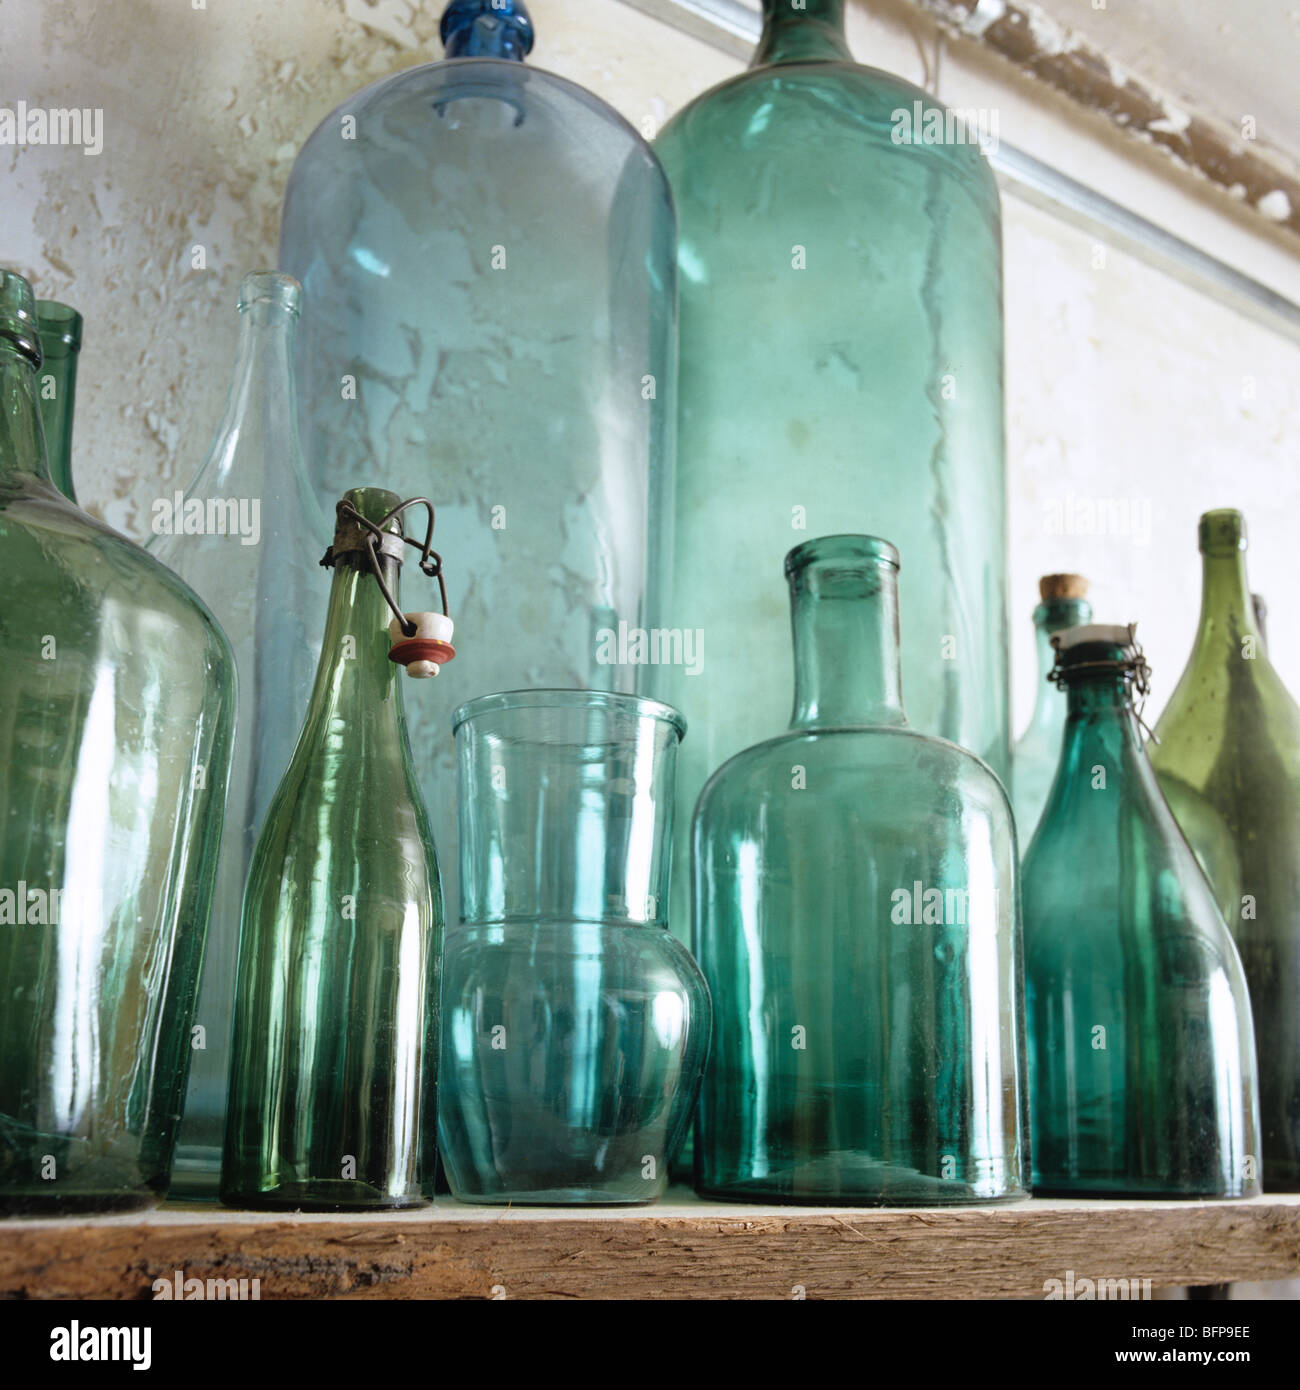 Row of assorted antique bottles and glassware on shelf / ledge Stock Photo